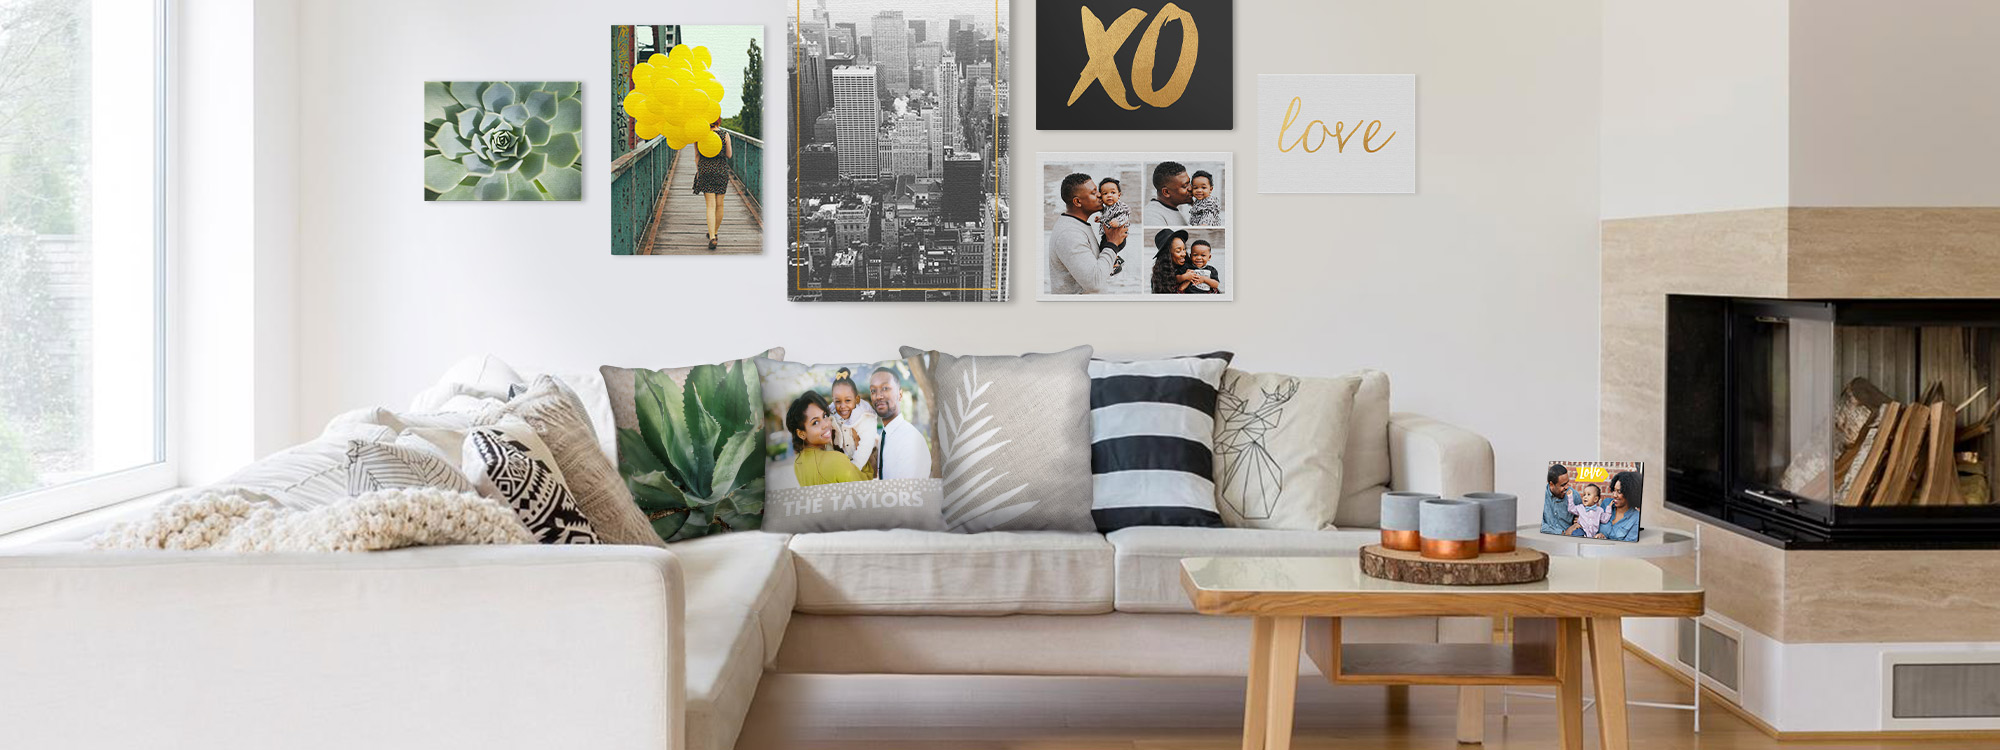 Home Decor Ideas Beautifully Display Your Photos Throughout The House - Beautiful-home-decor-ideas